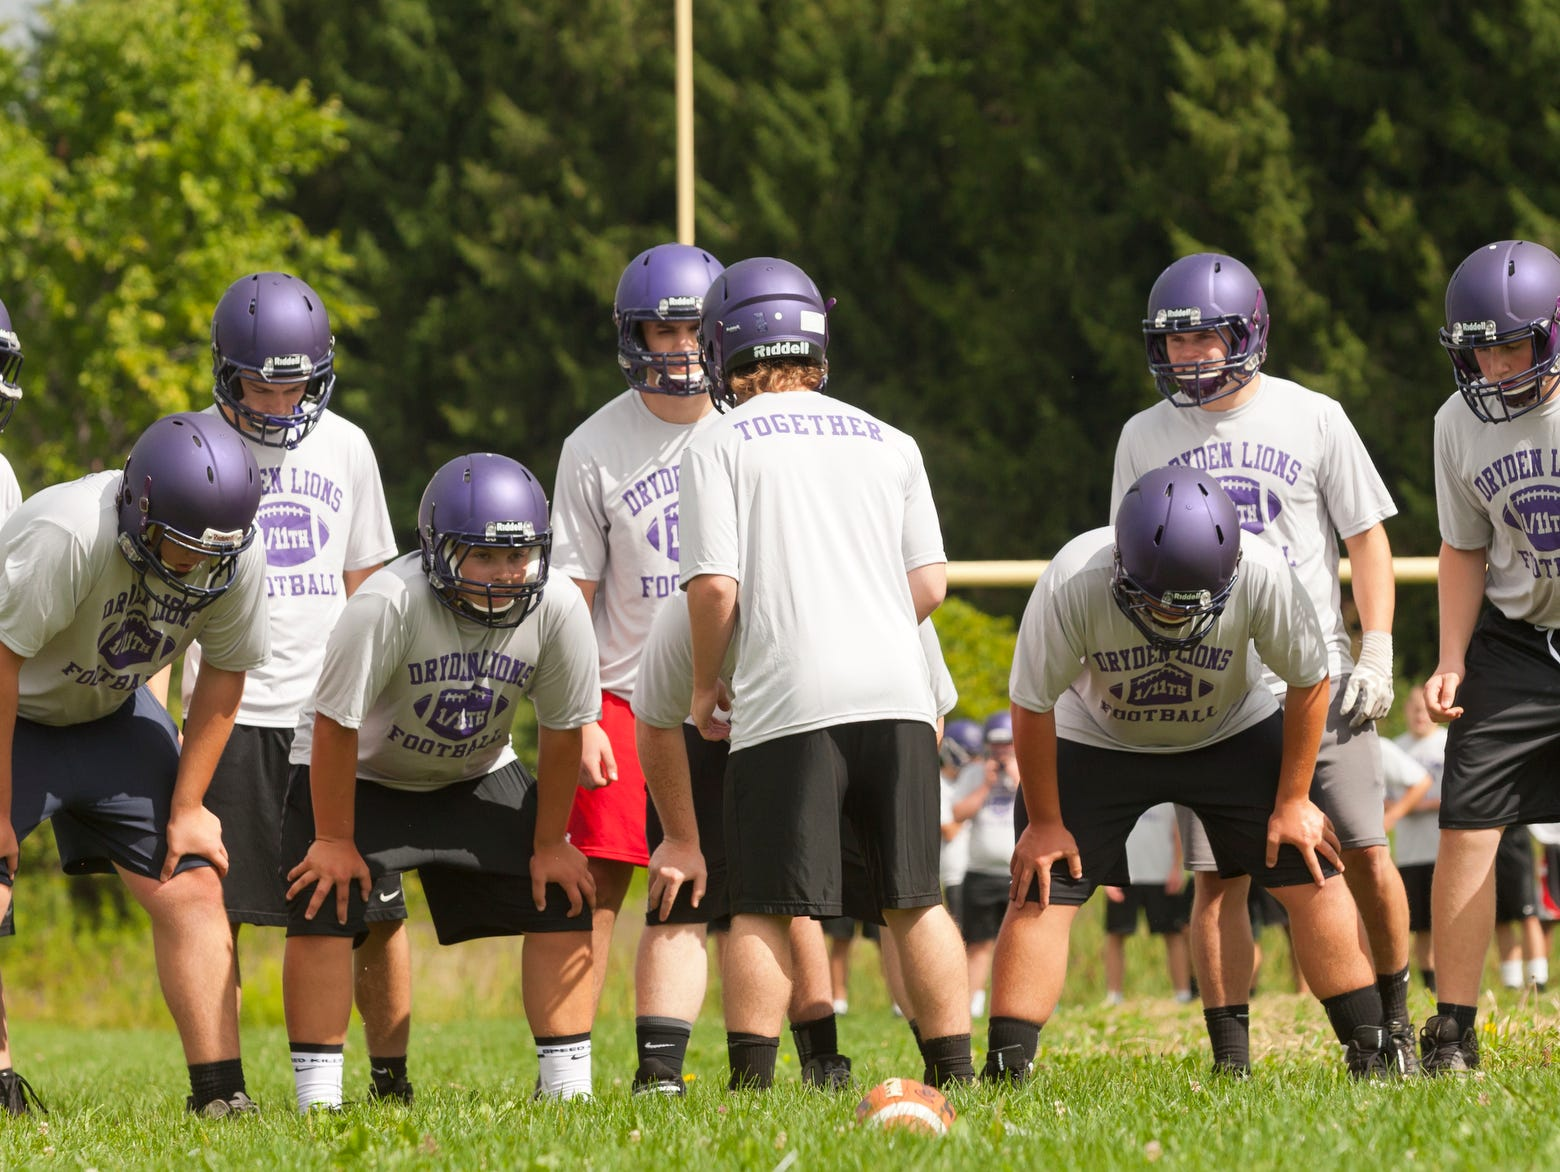 The Dryden High School football team prepares to run a play Monday morning during the first day of practice for fall sports.